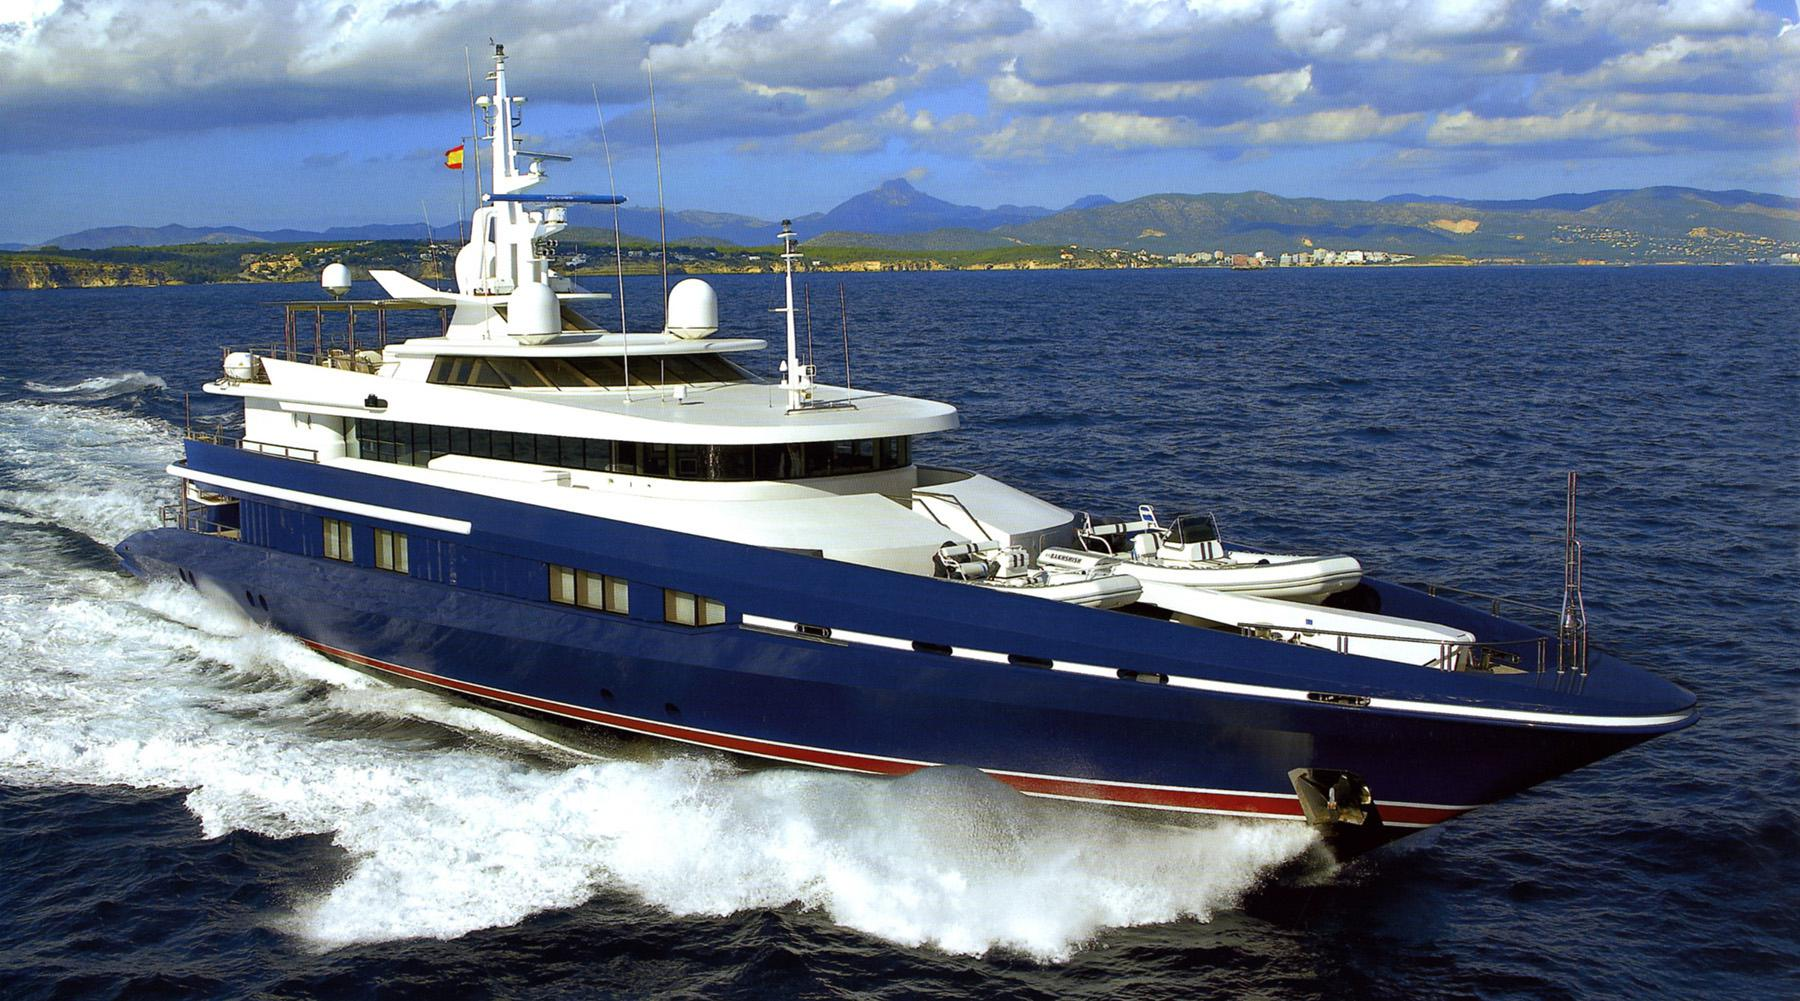 OCEAN SEVEN specs with detailed specification and builder summary